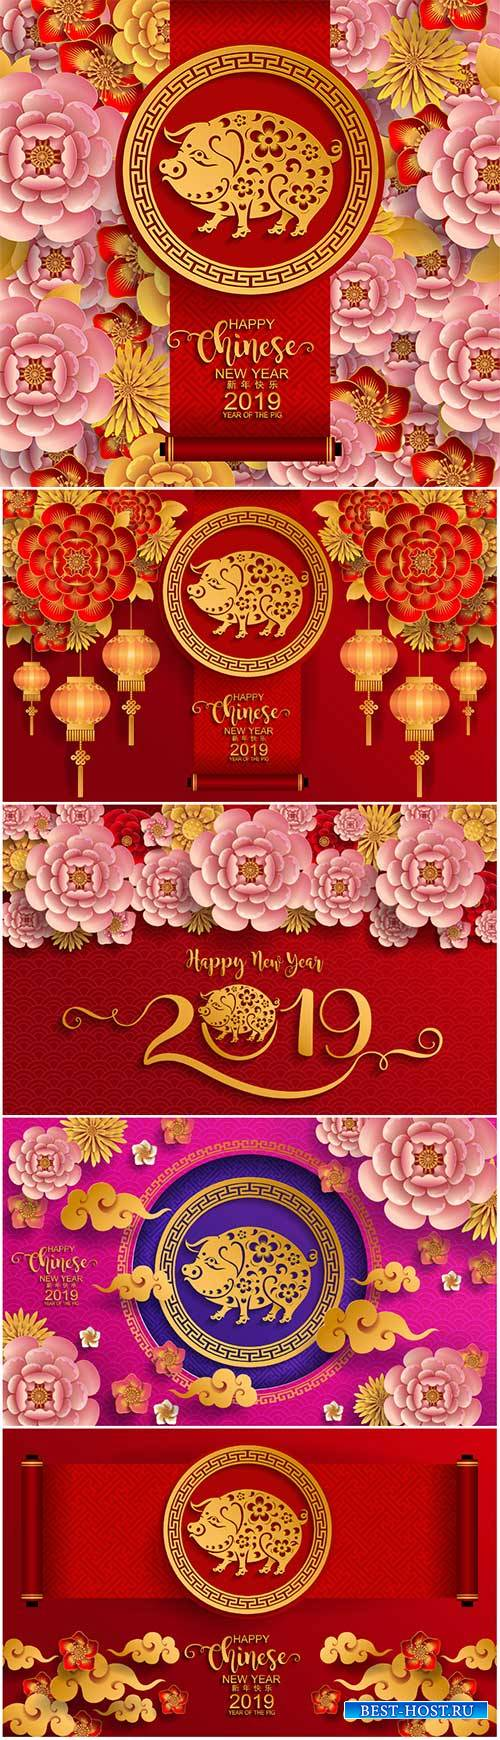 Pig year 2019 chinese luxury vector card # 2